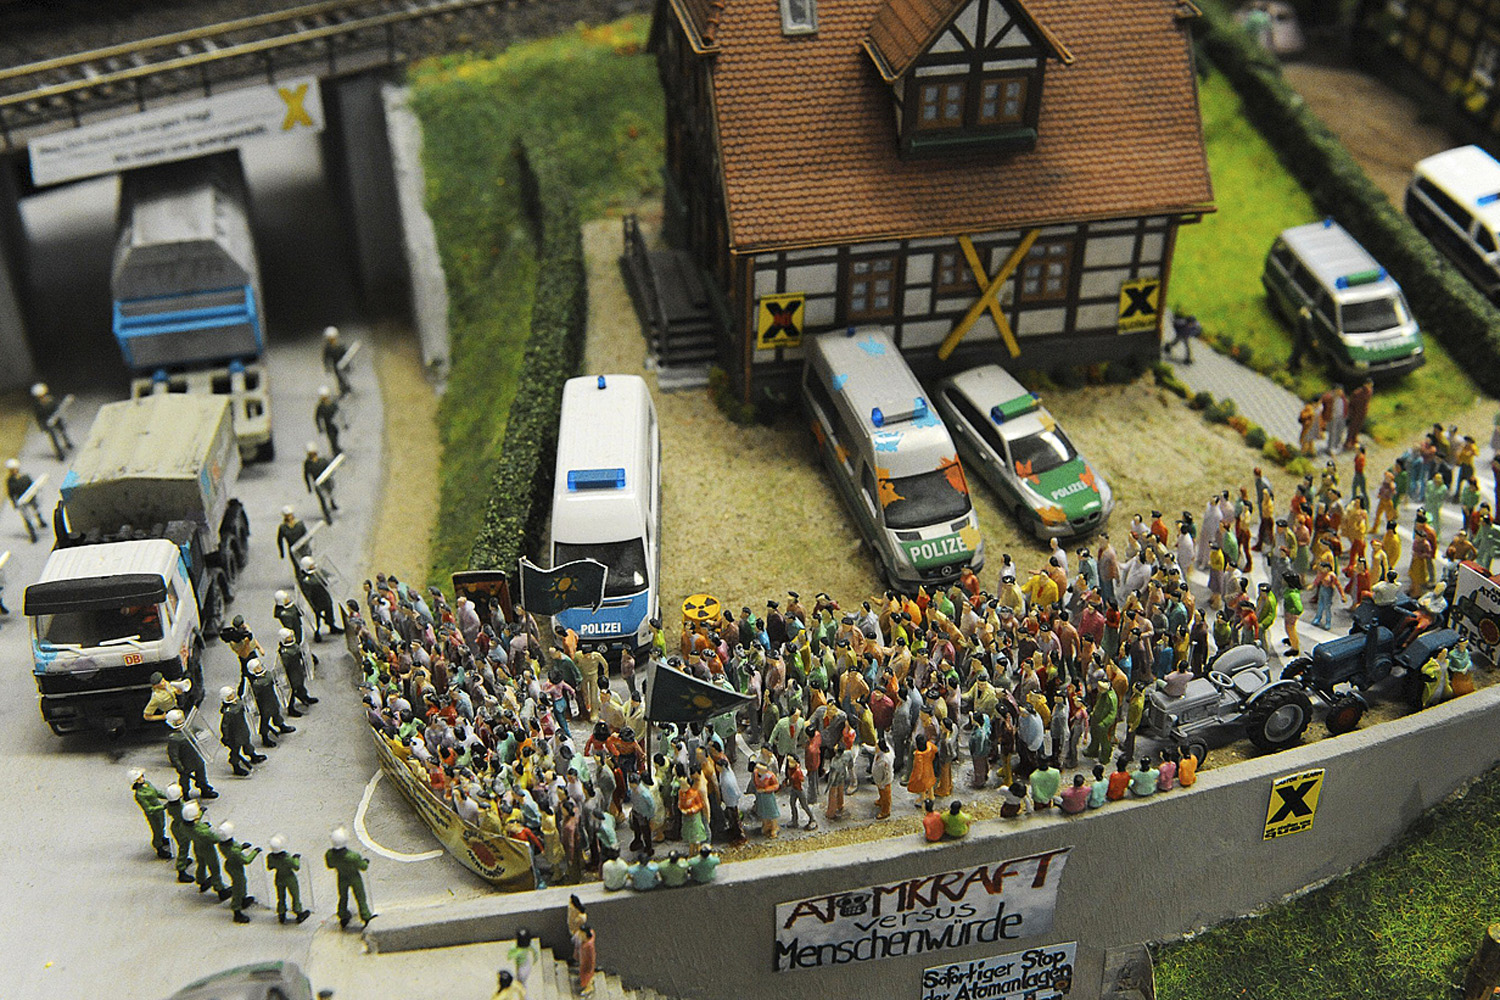 February 5, 2011. Miniature model railway landscape shows a demonstration scene as part of the Castor protest events in Stadthagen, Germany. A group of students built this miniature landscape, which is inspired by the real events of the anti-nuclear protests against the Castor nuclear transport.